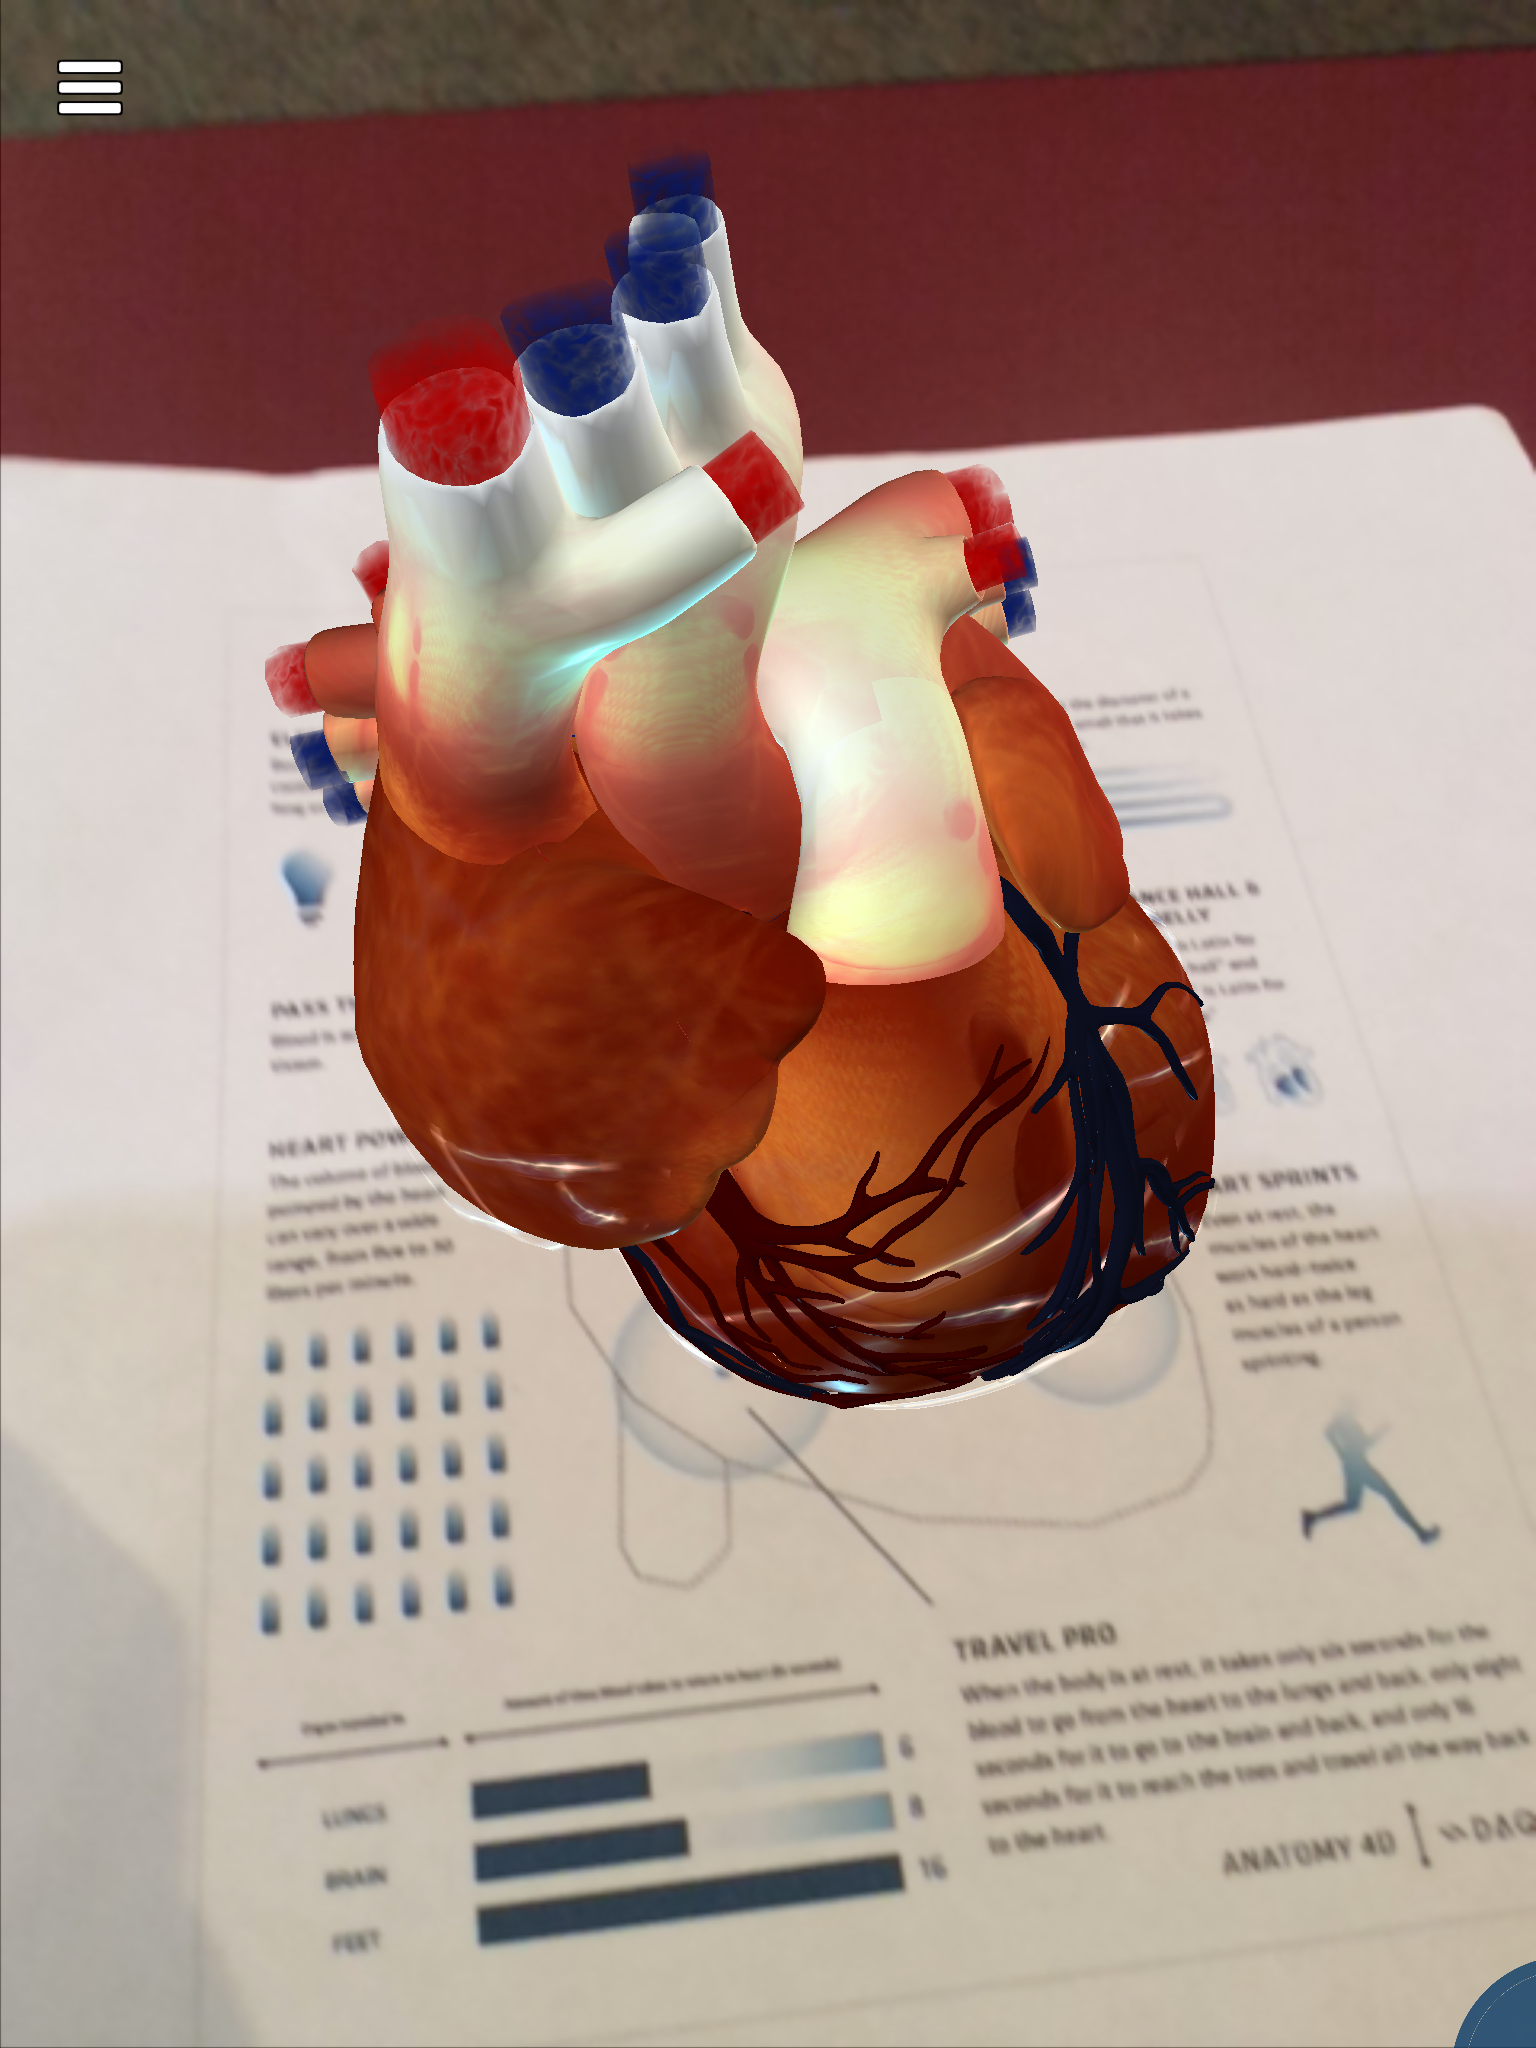 Take A Journey Inside The Human Body And Heart By